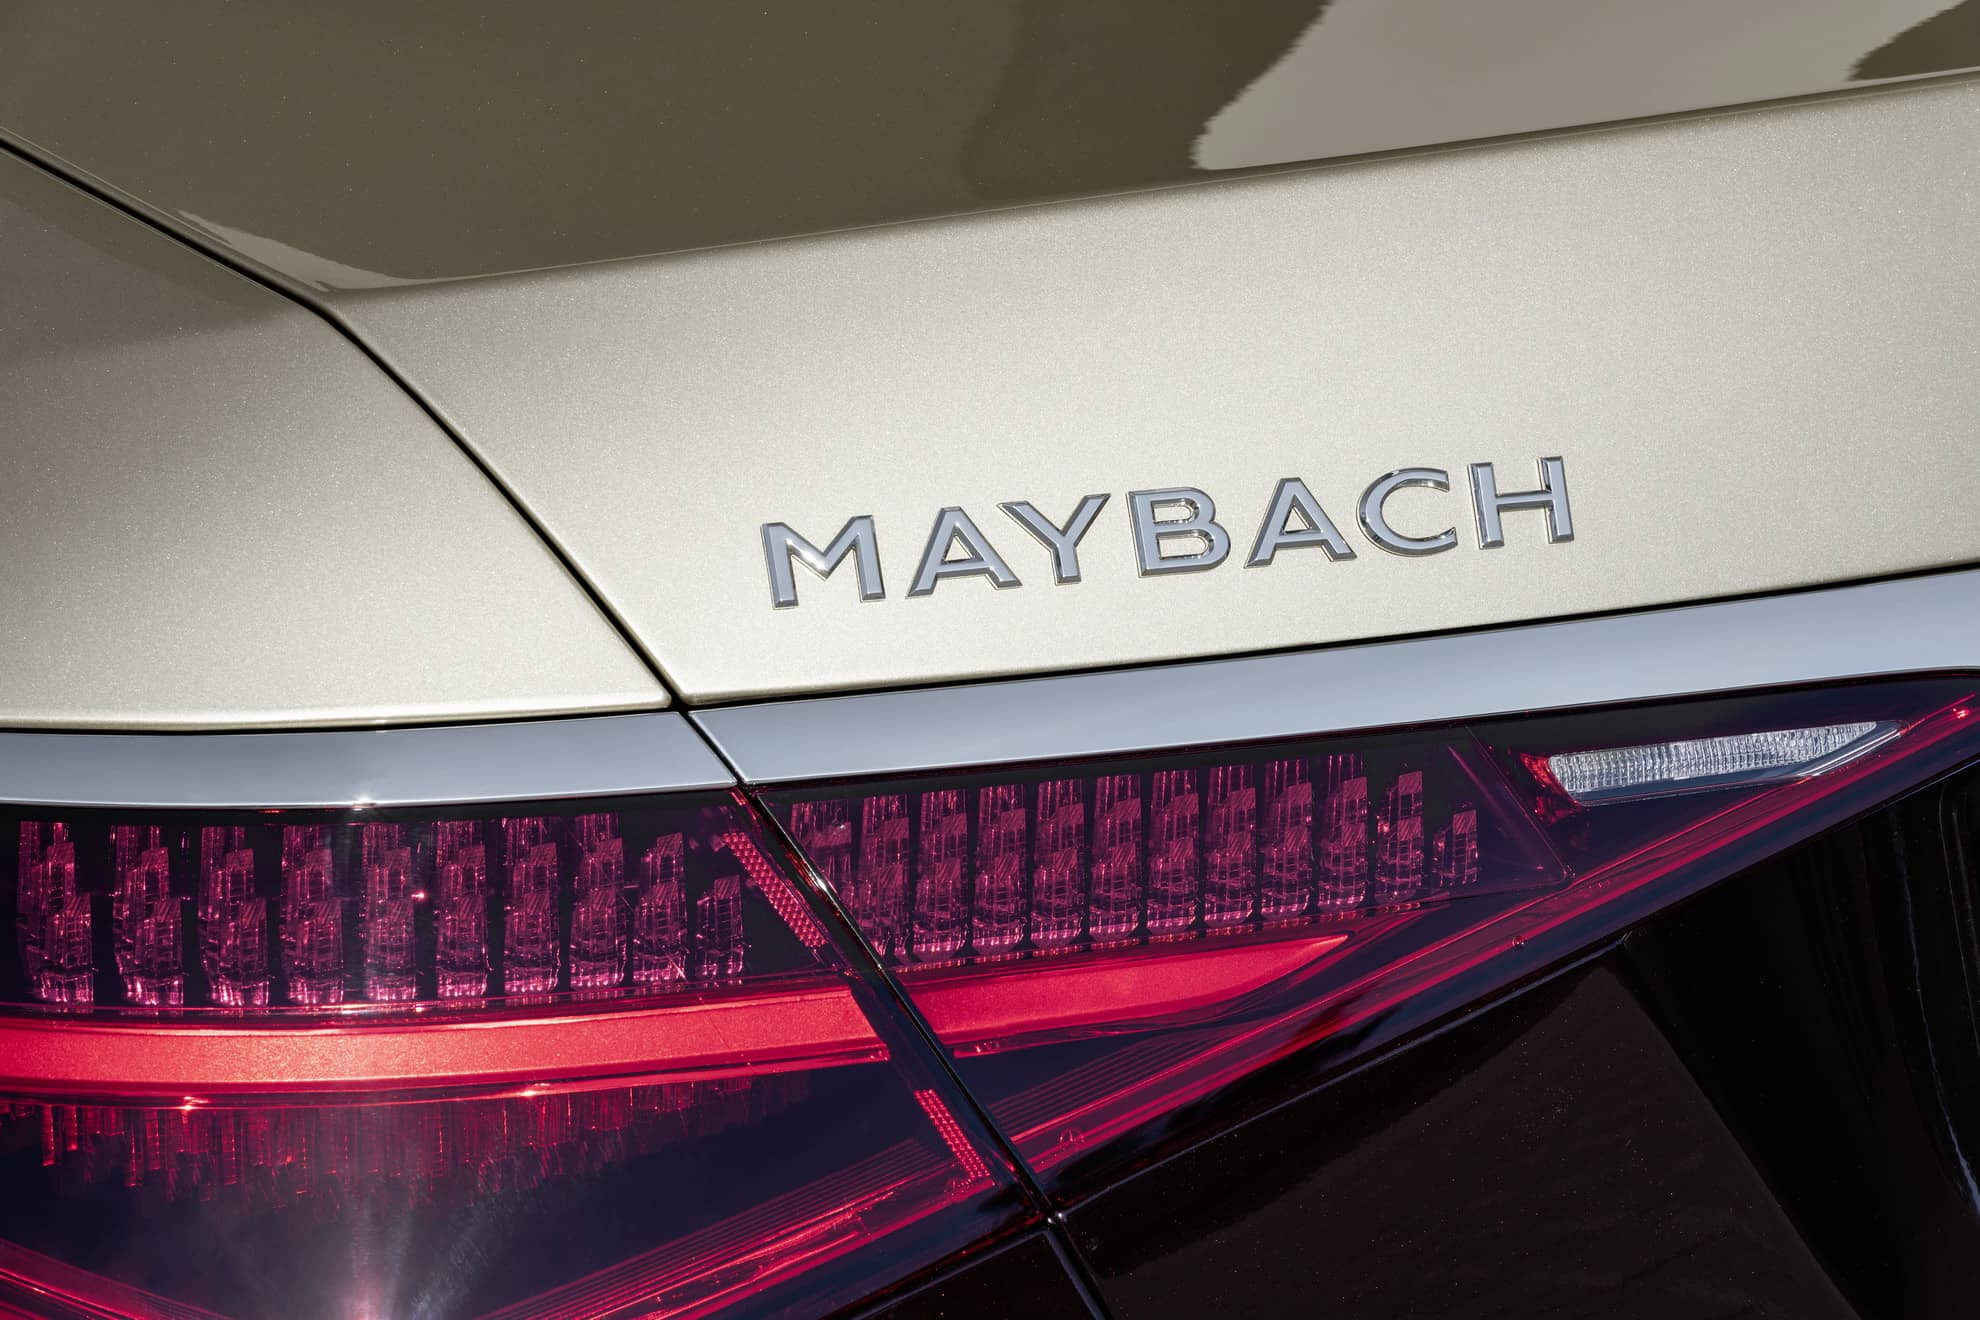 mercedes-mabych s (7)